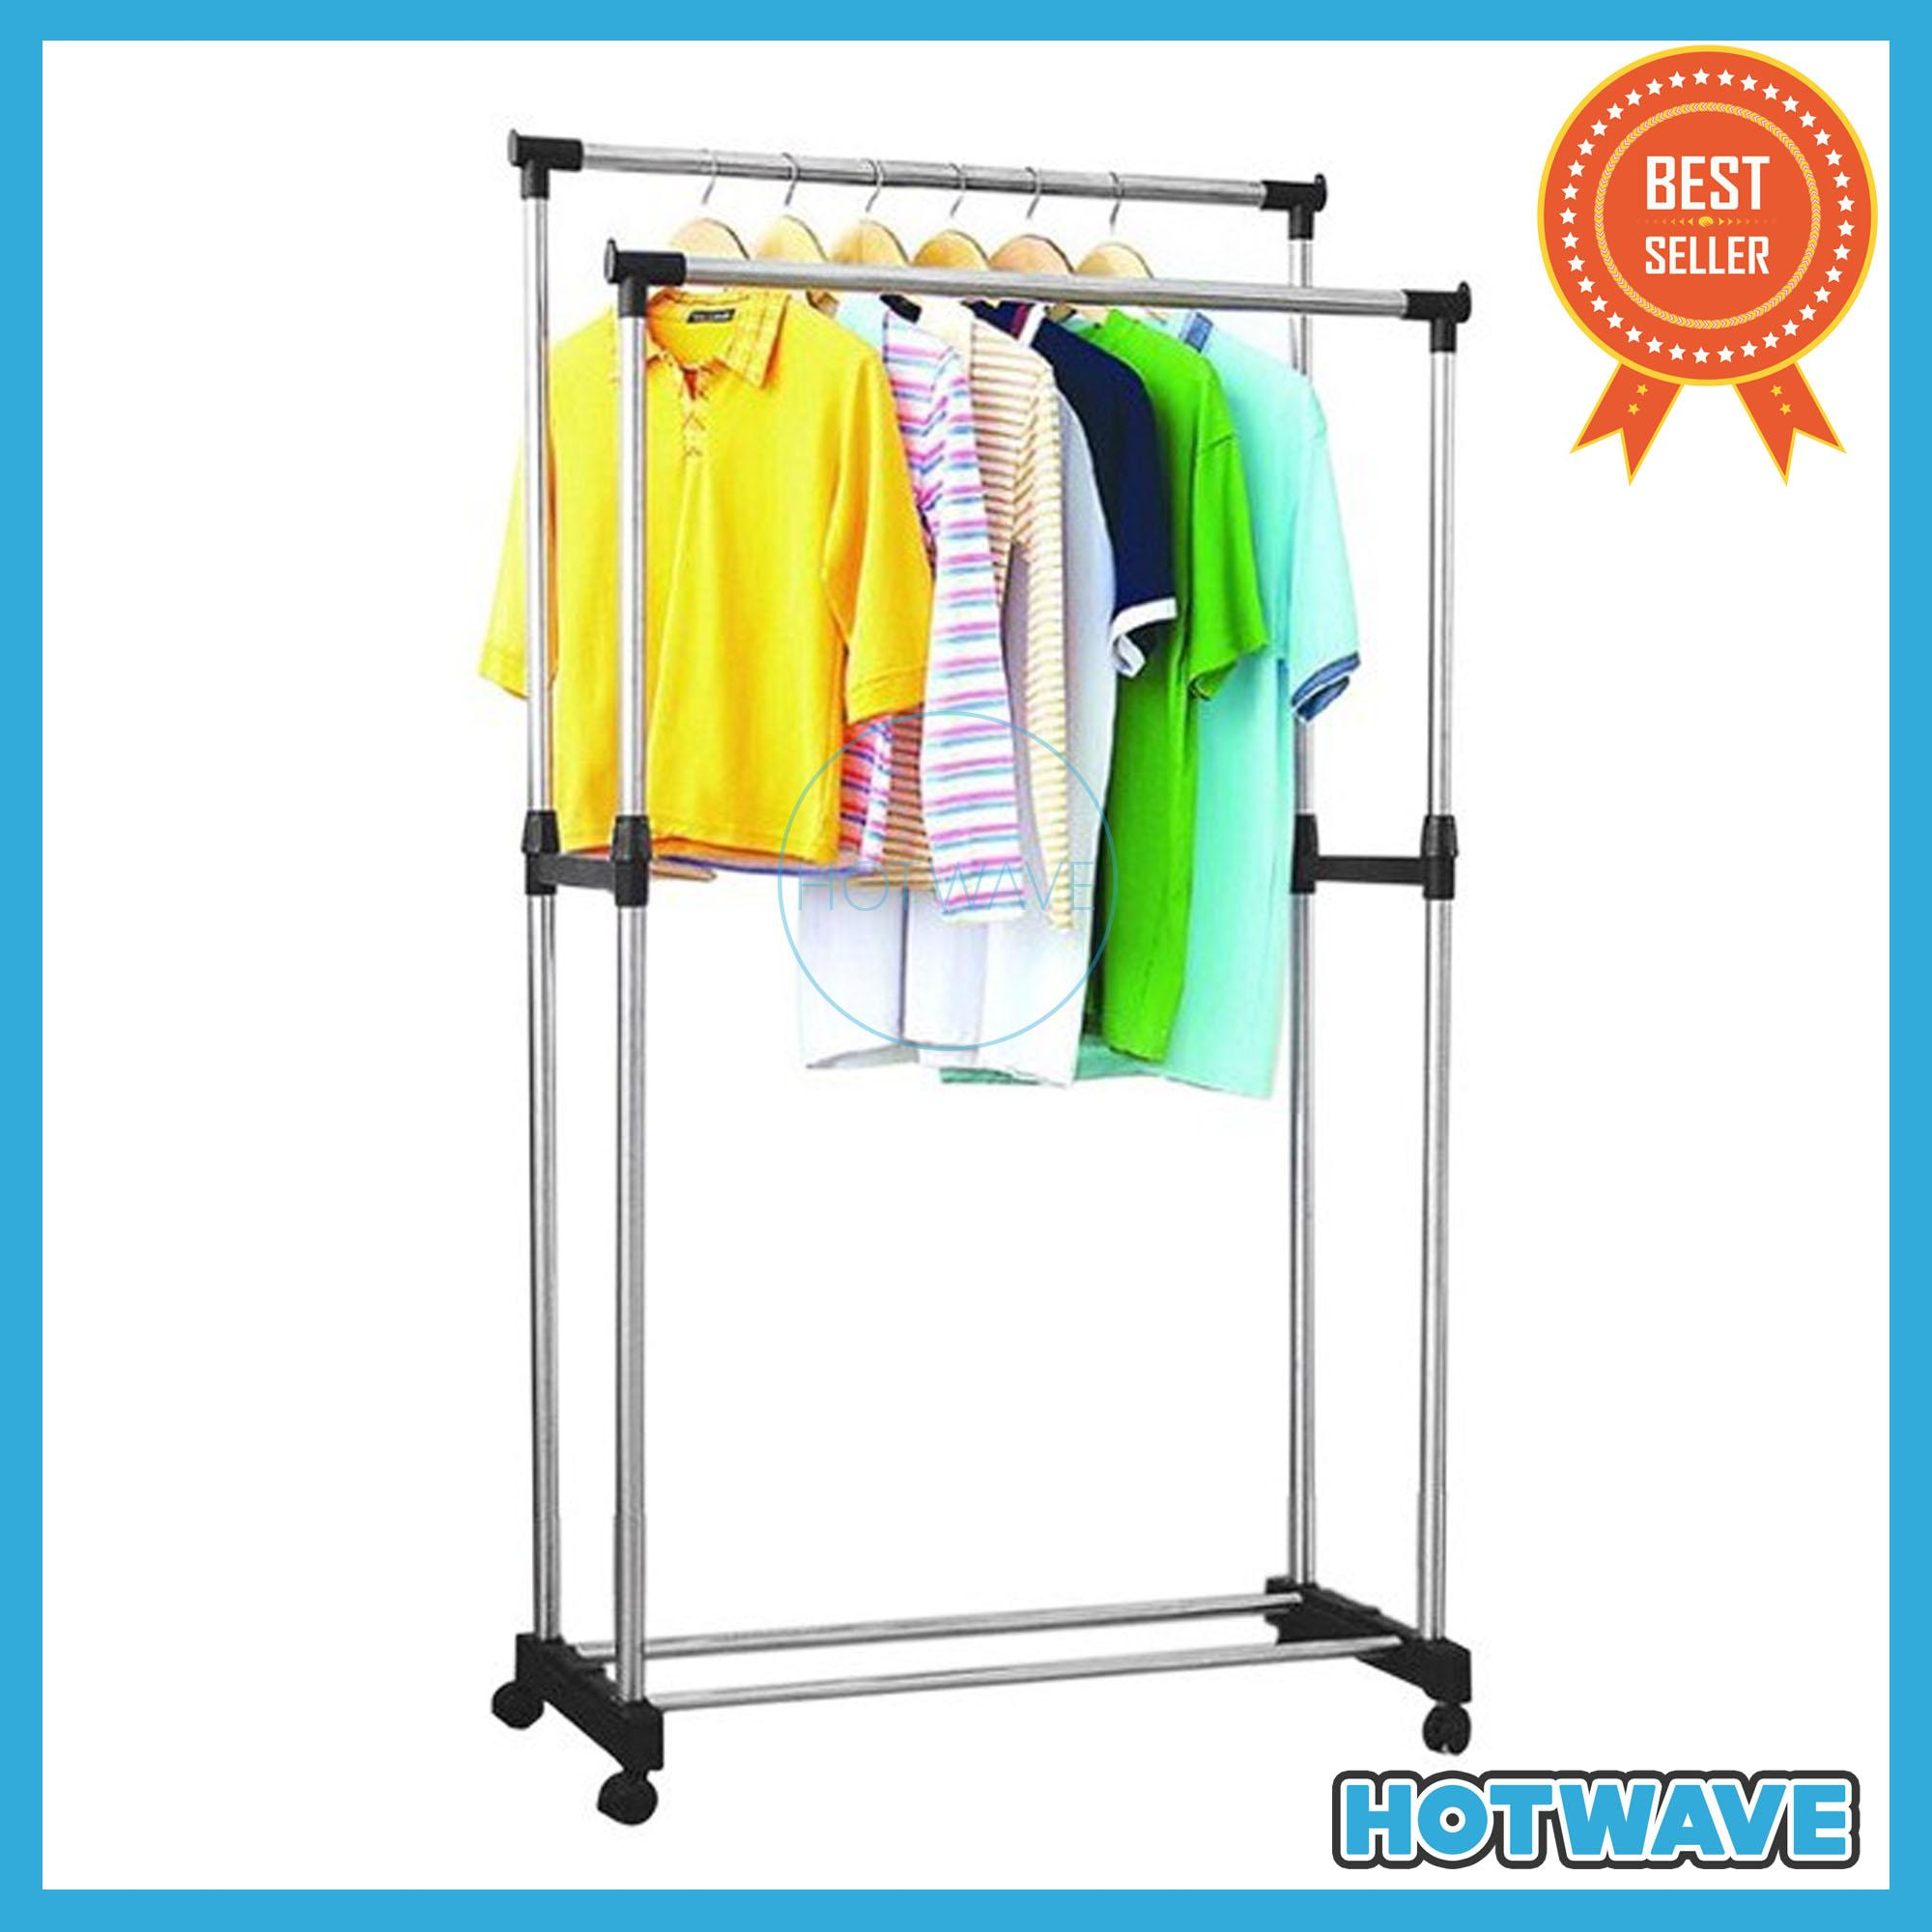 Double Pole Telescopic Stainless Steel Clothes Rack High Quality